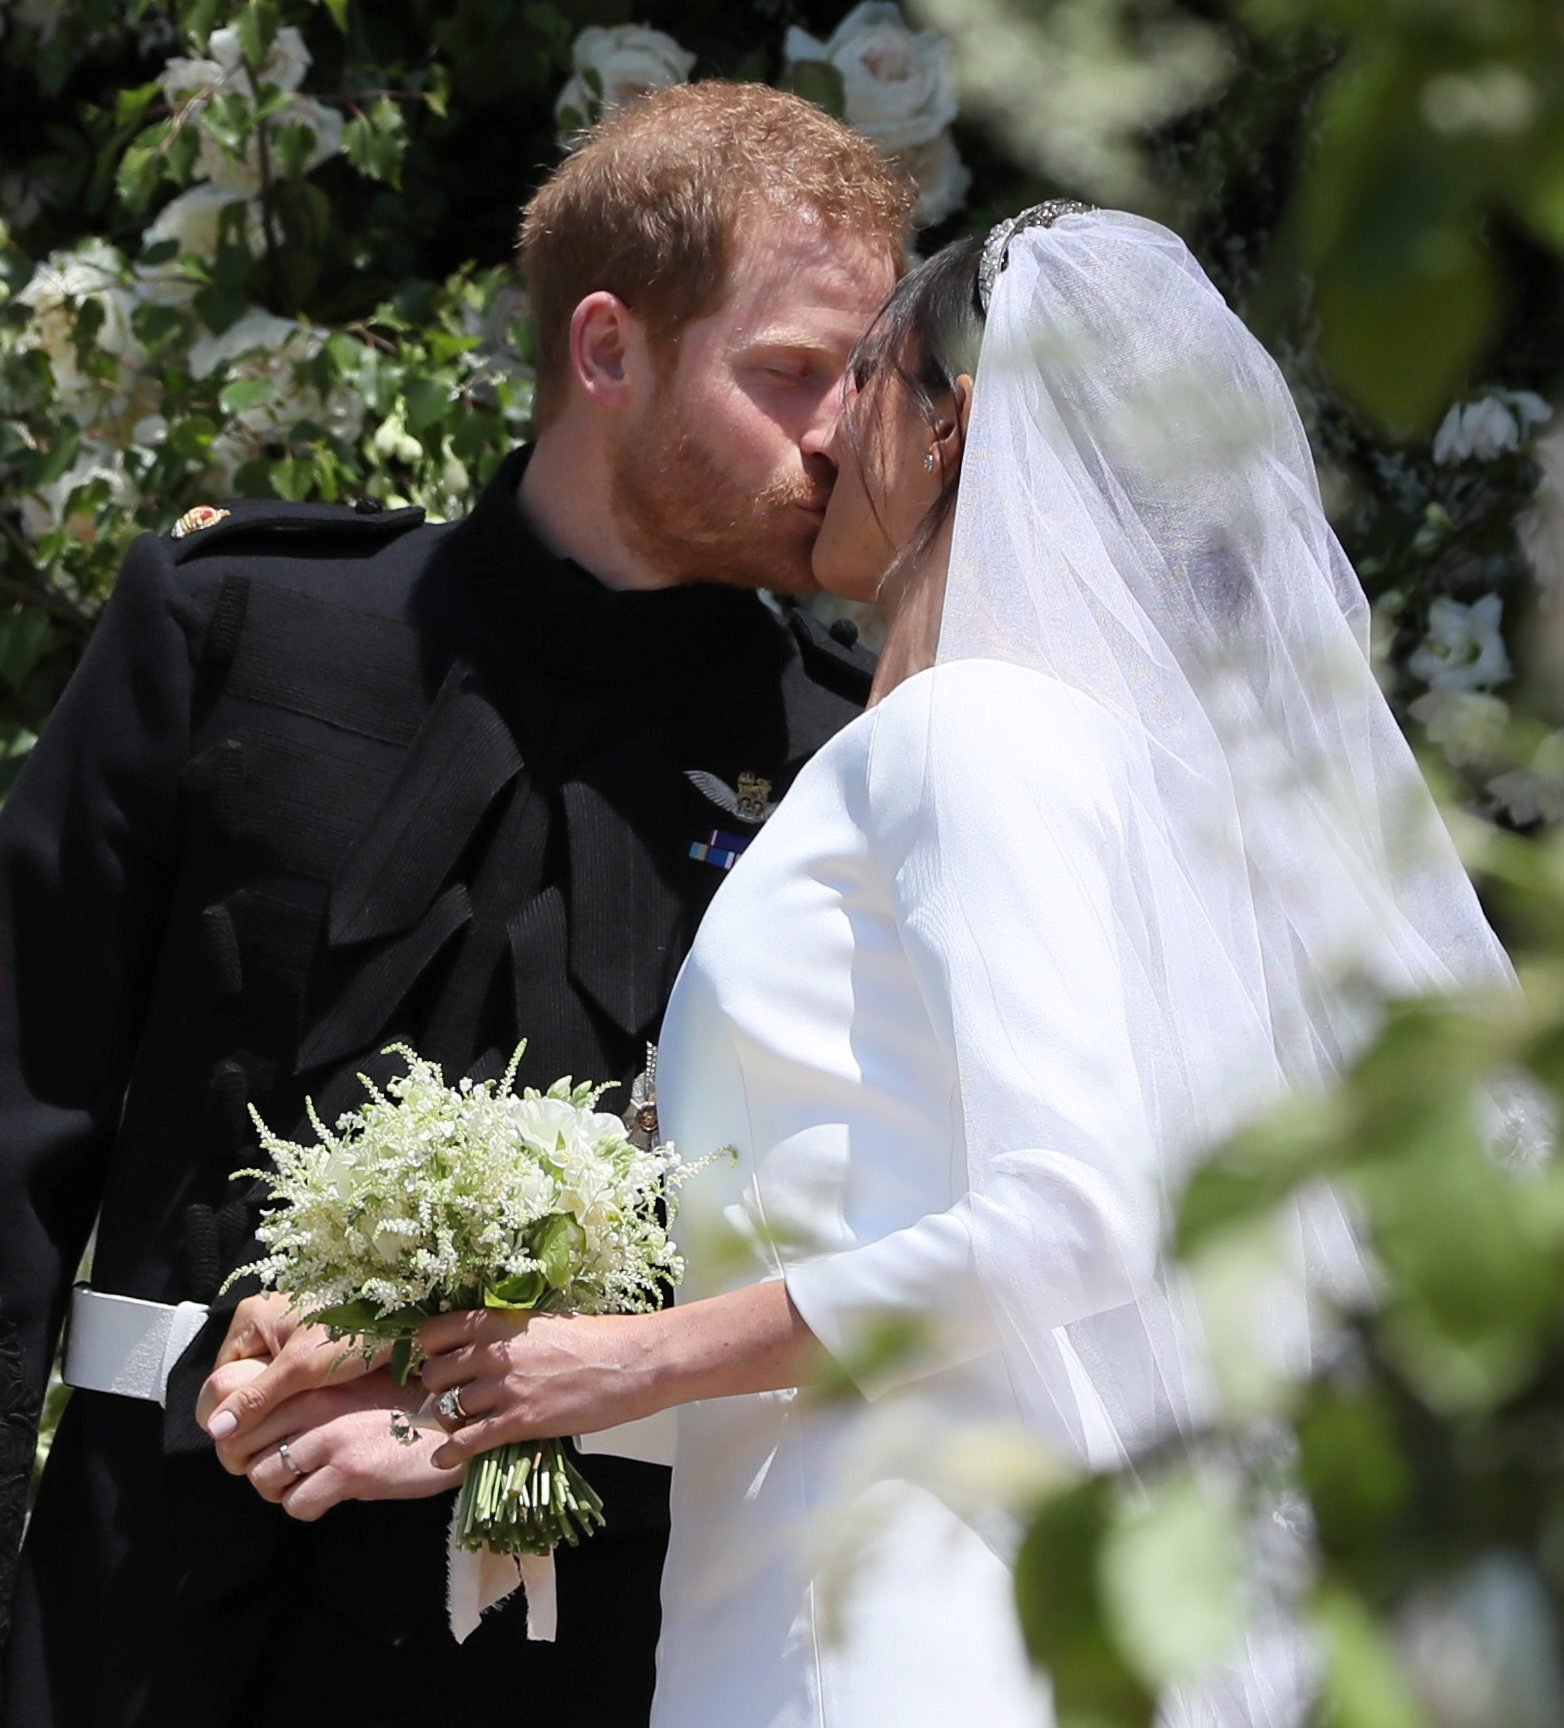 Prince Harry and Meghan Markle kiss as they leave St George's Chapel at Windsor Castle following their wedding in Windsor, Britain, May 19, 2018. Brian Lawless/Pool via REUTERS